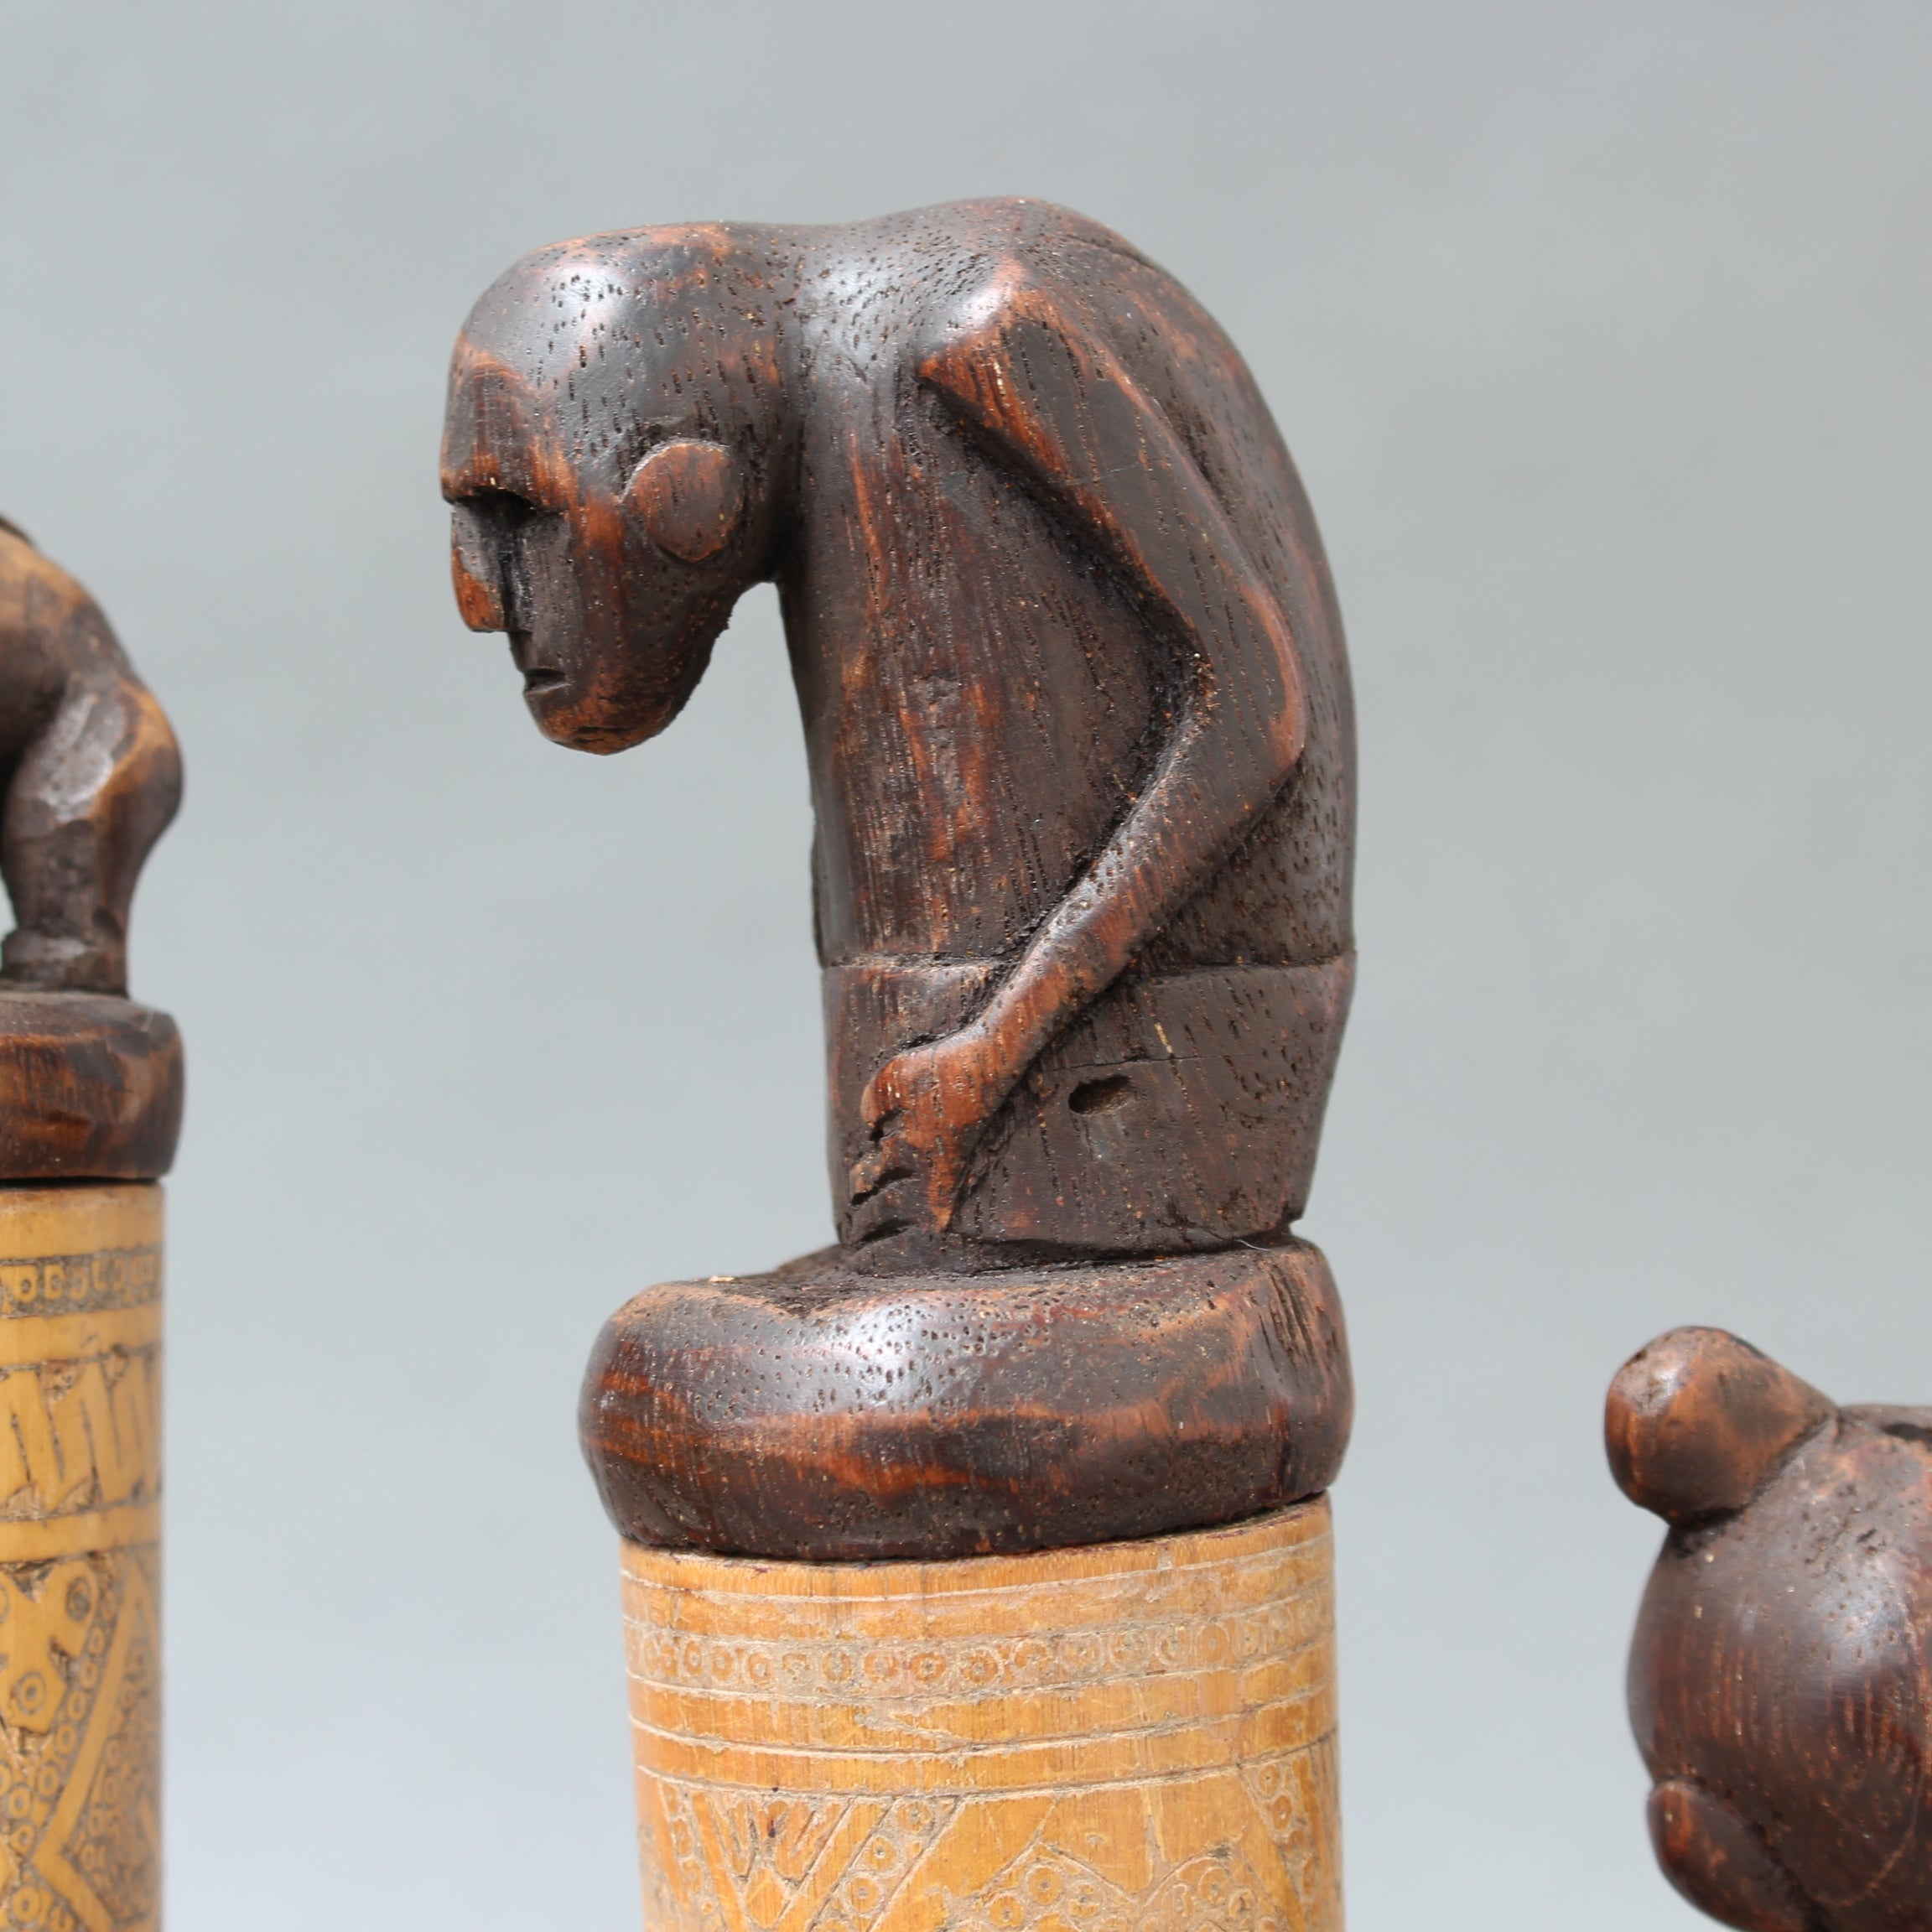 Set of Five Wood and Bamboo Lime Powder Holders for Betel Nut from W. Timor Island, Indonesia (circa 1940s - 60s)